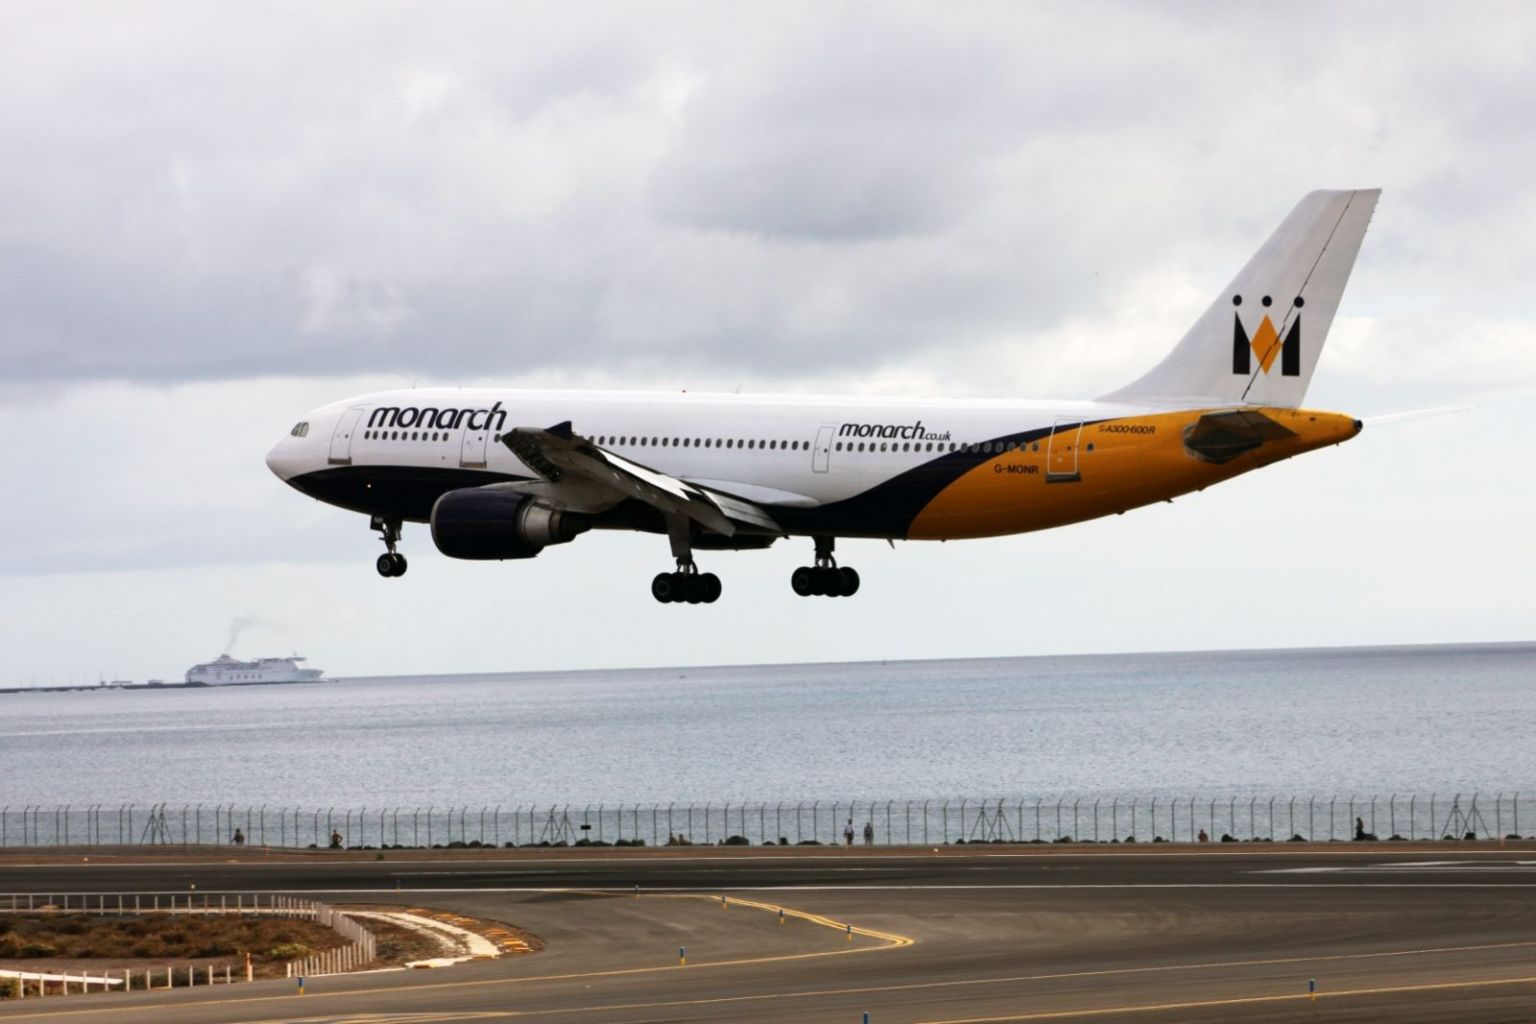 Monarch Airlines Airbus A300-600R G-MONR